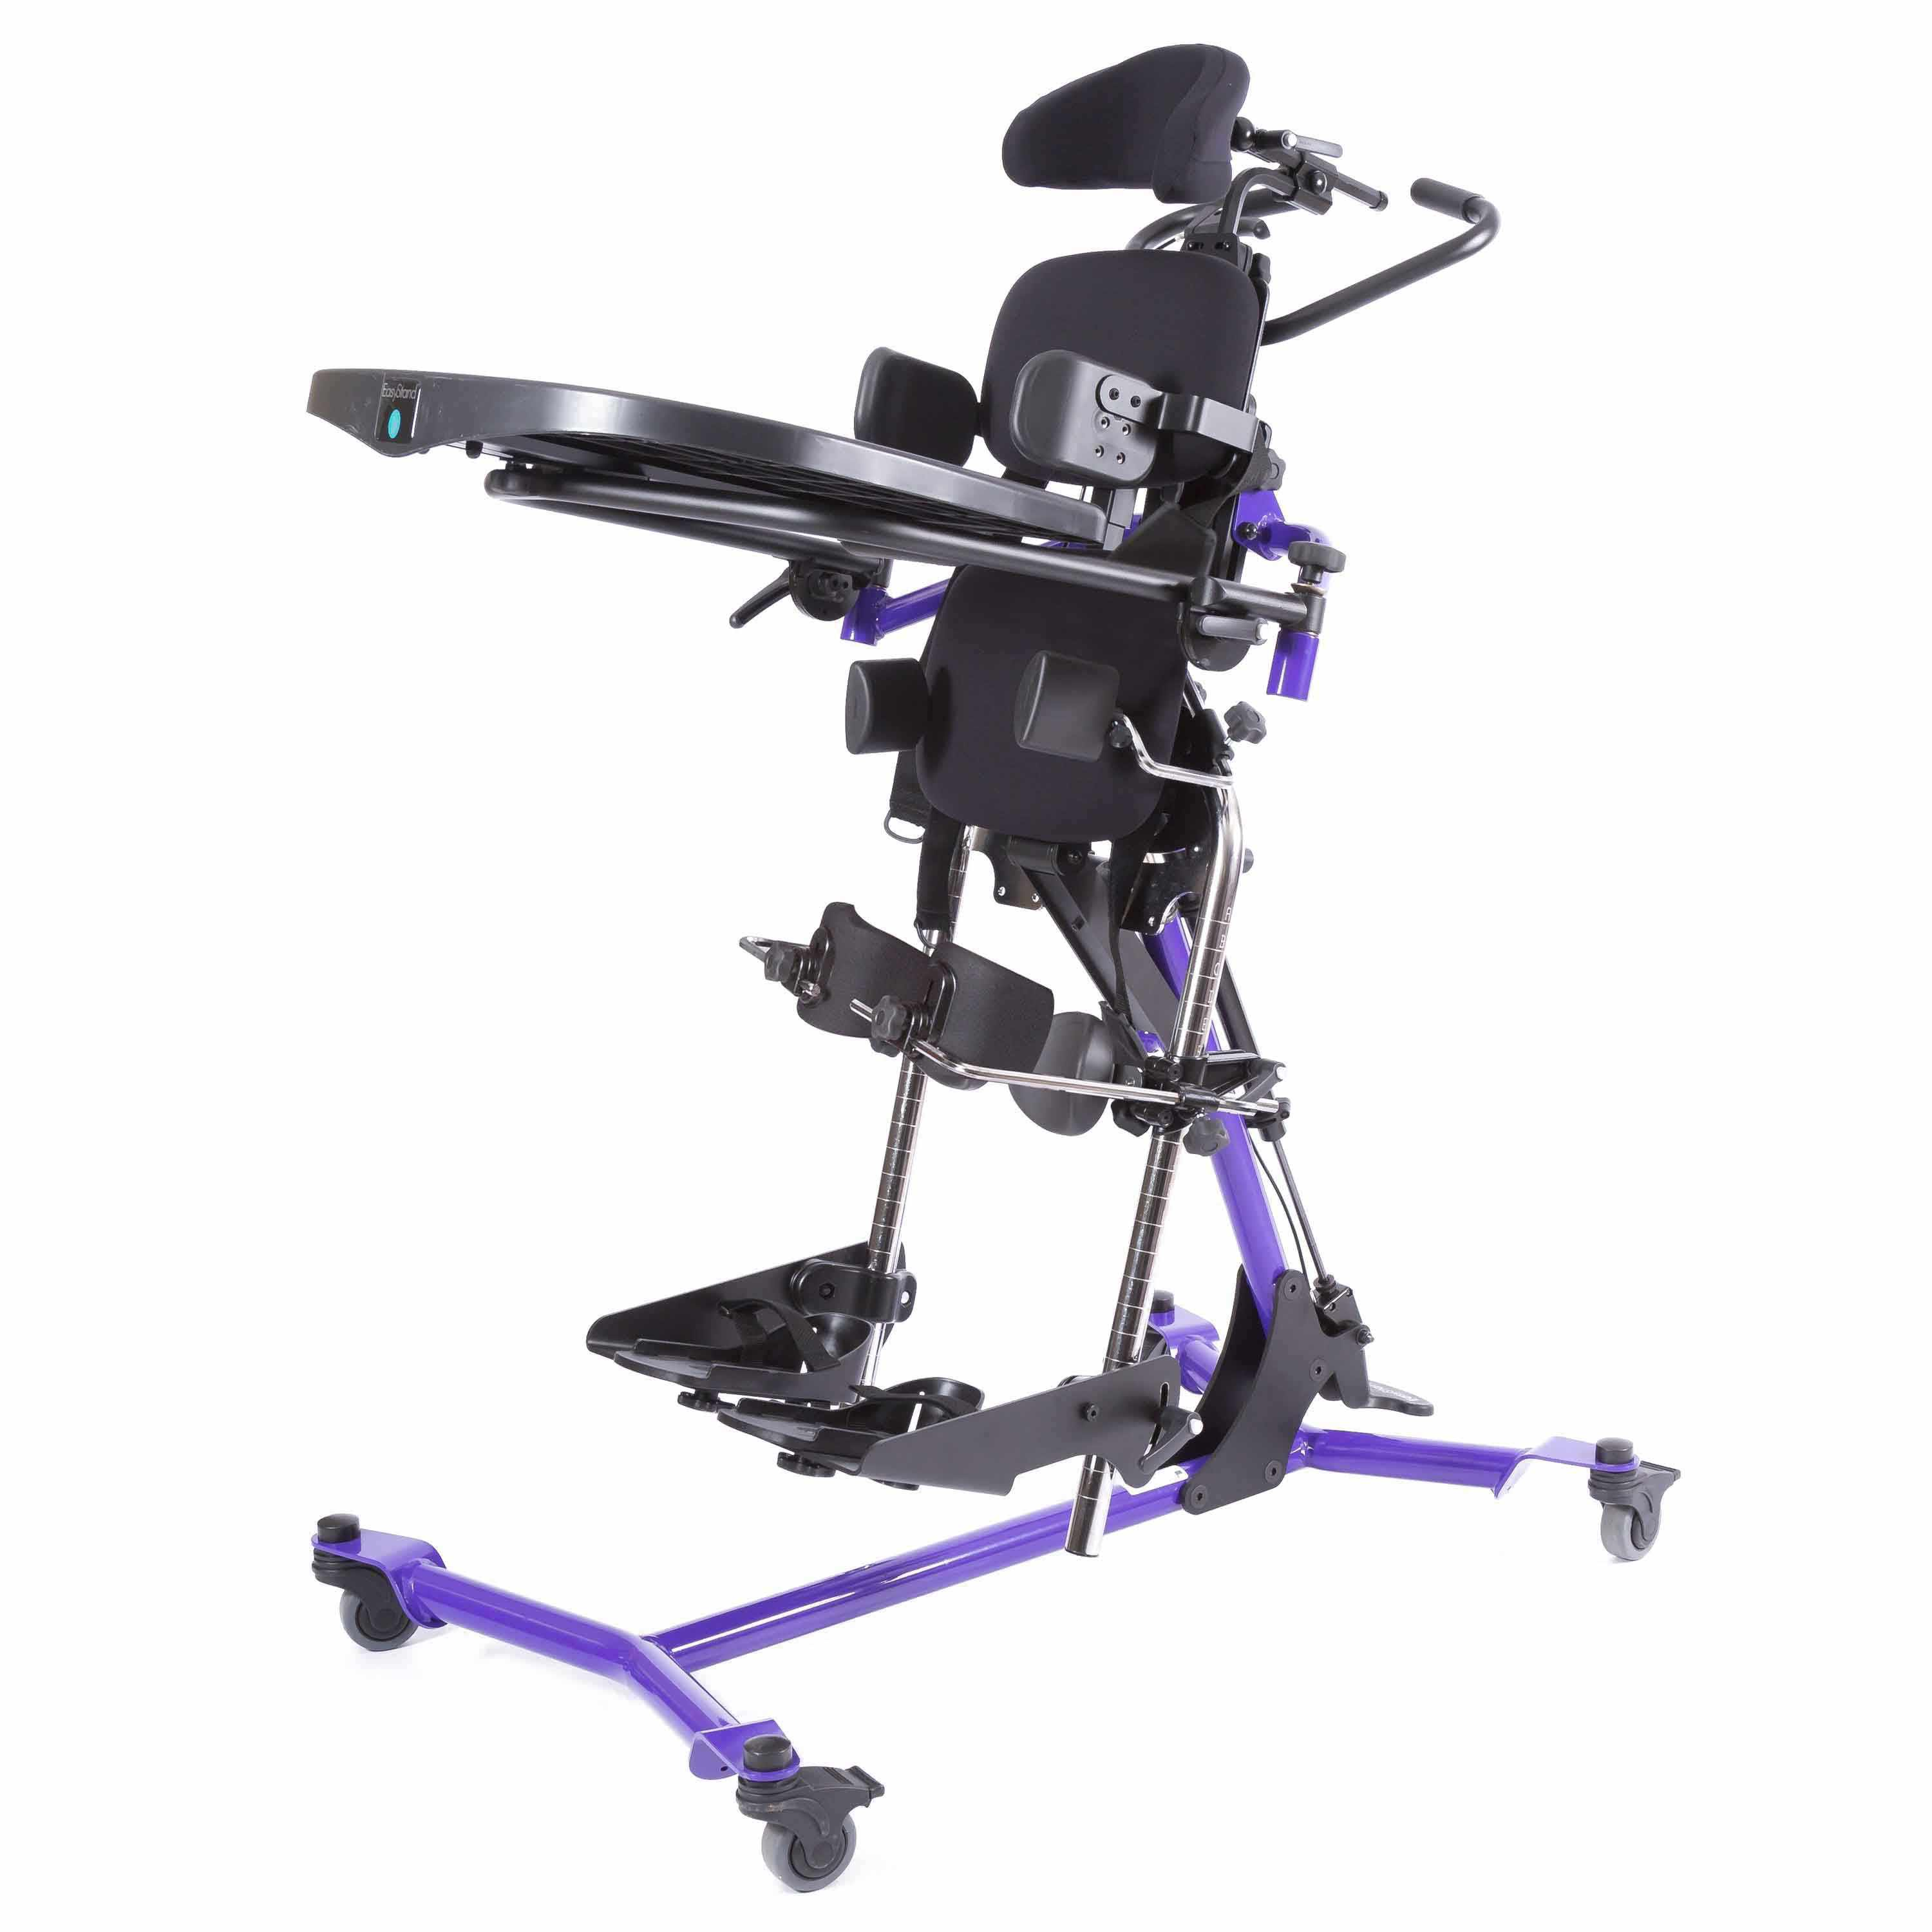 Easystand Zing size 2 multi-position stander - Package